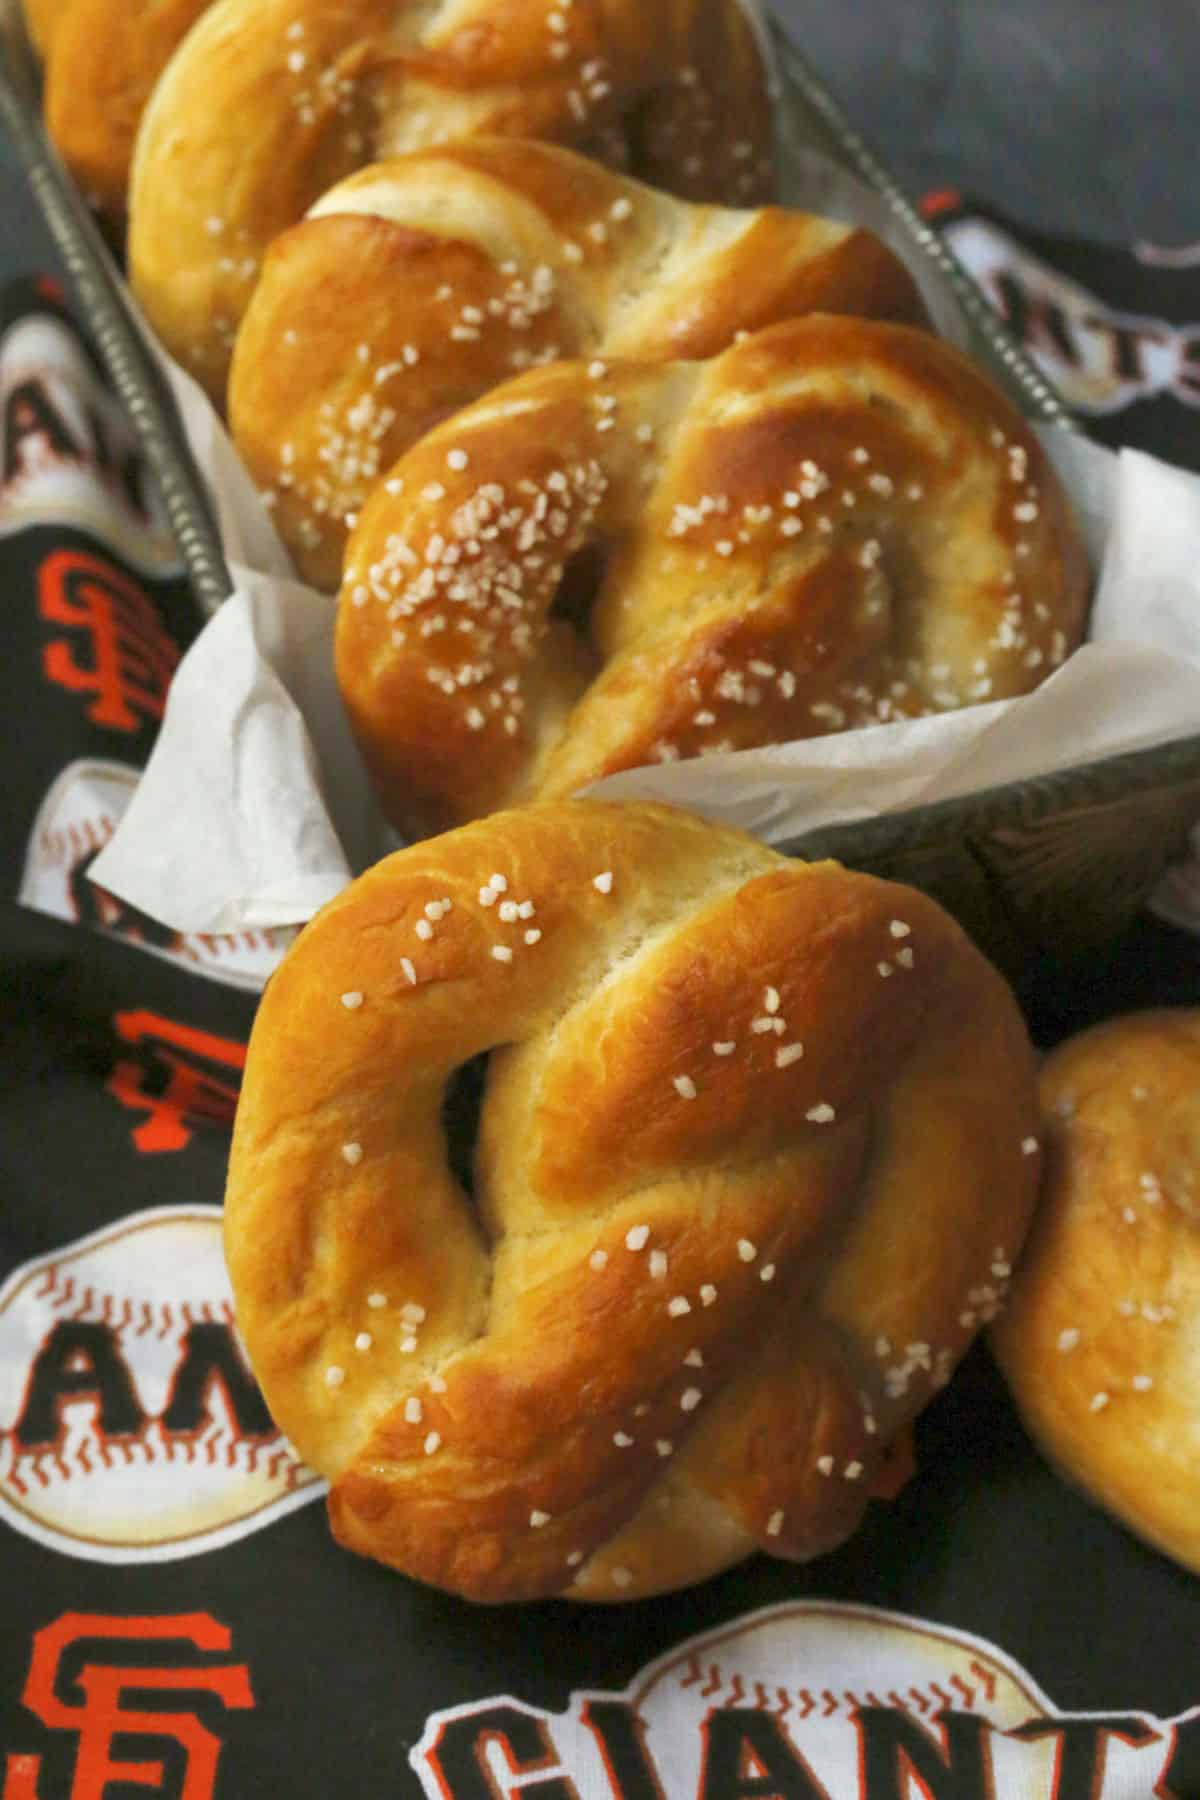 A pan filled with salted pretzels on a San Francisco Giants towel.